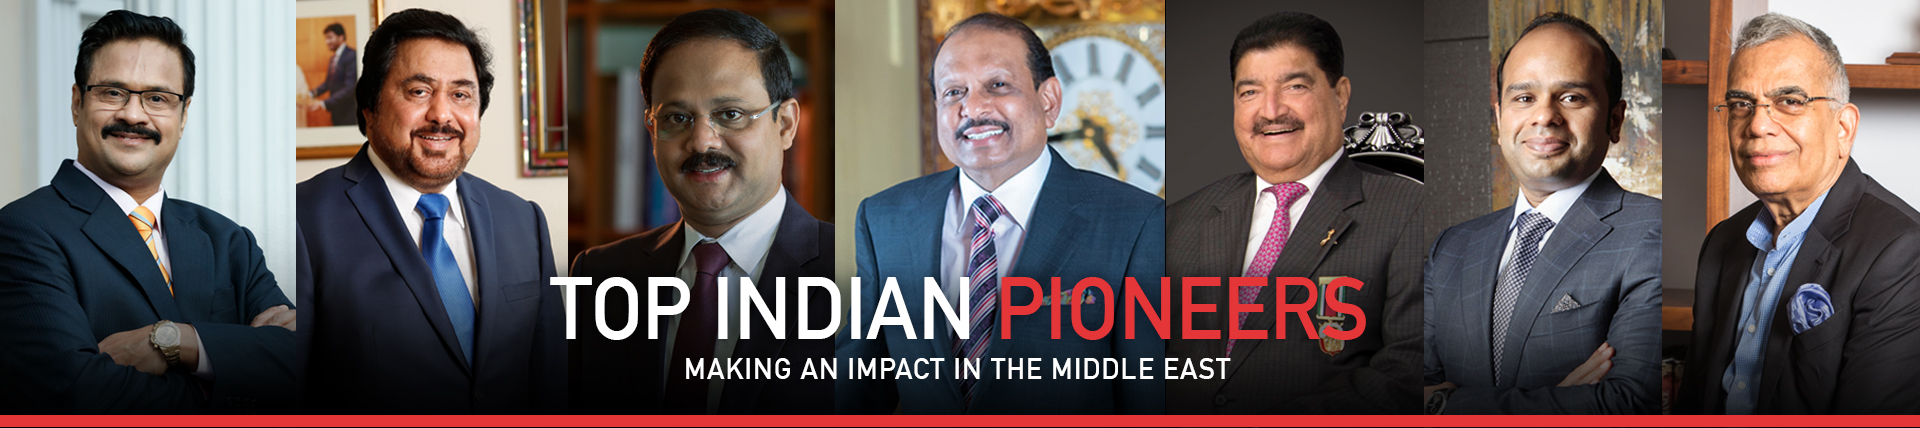 Top 100 Indian Leaders Making An Impact In The Middle East 2019